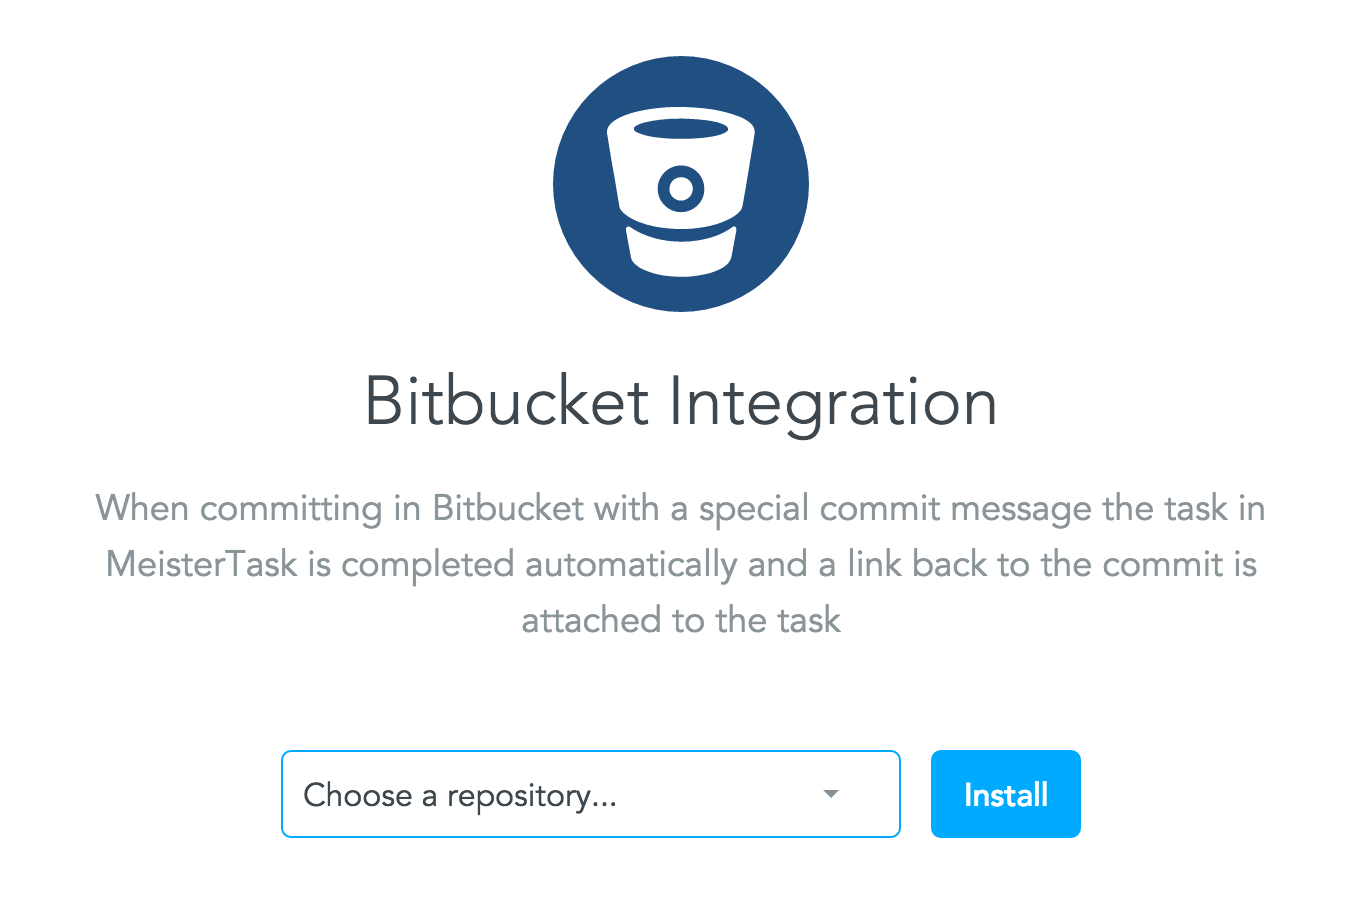 Enabling the BitBucket integration in MeisterTask - Step 3